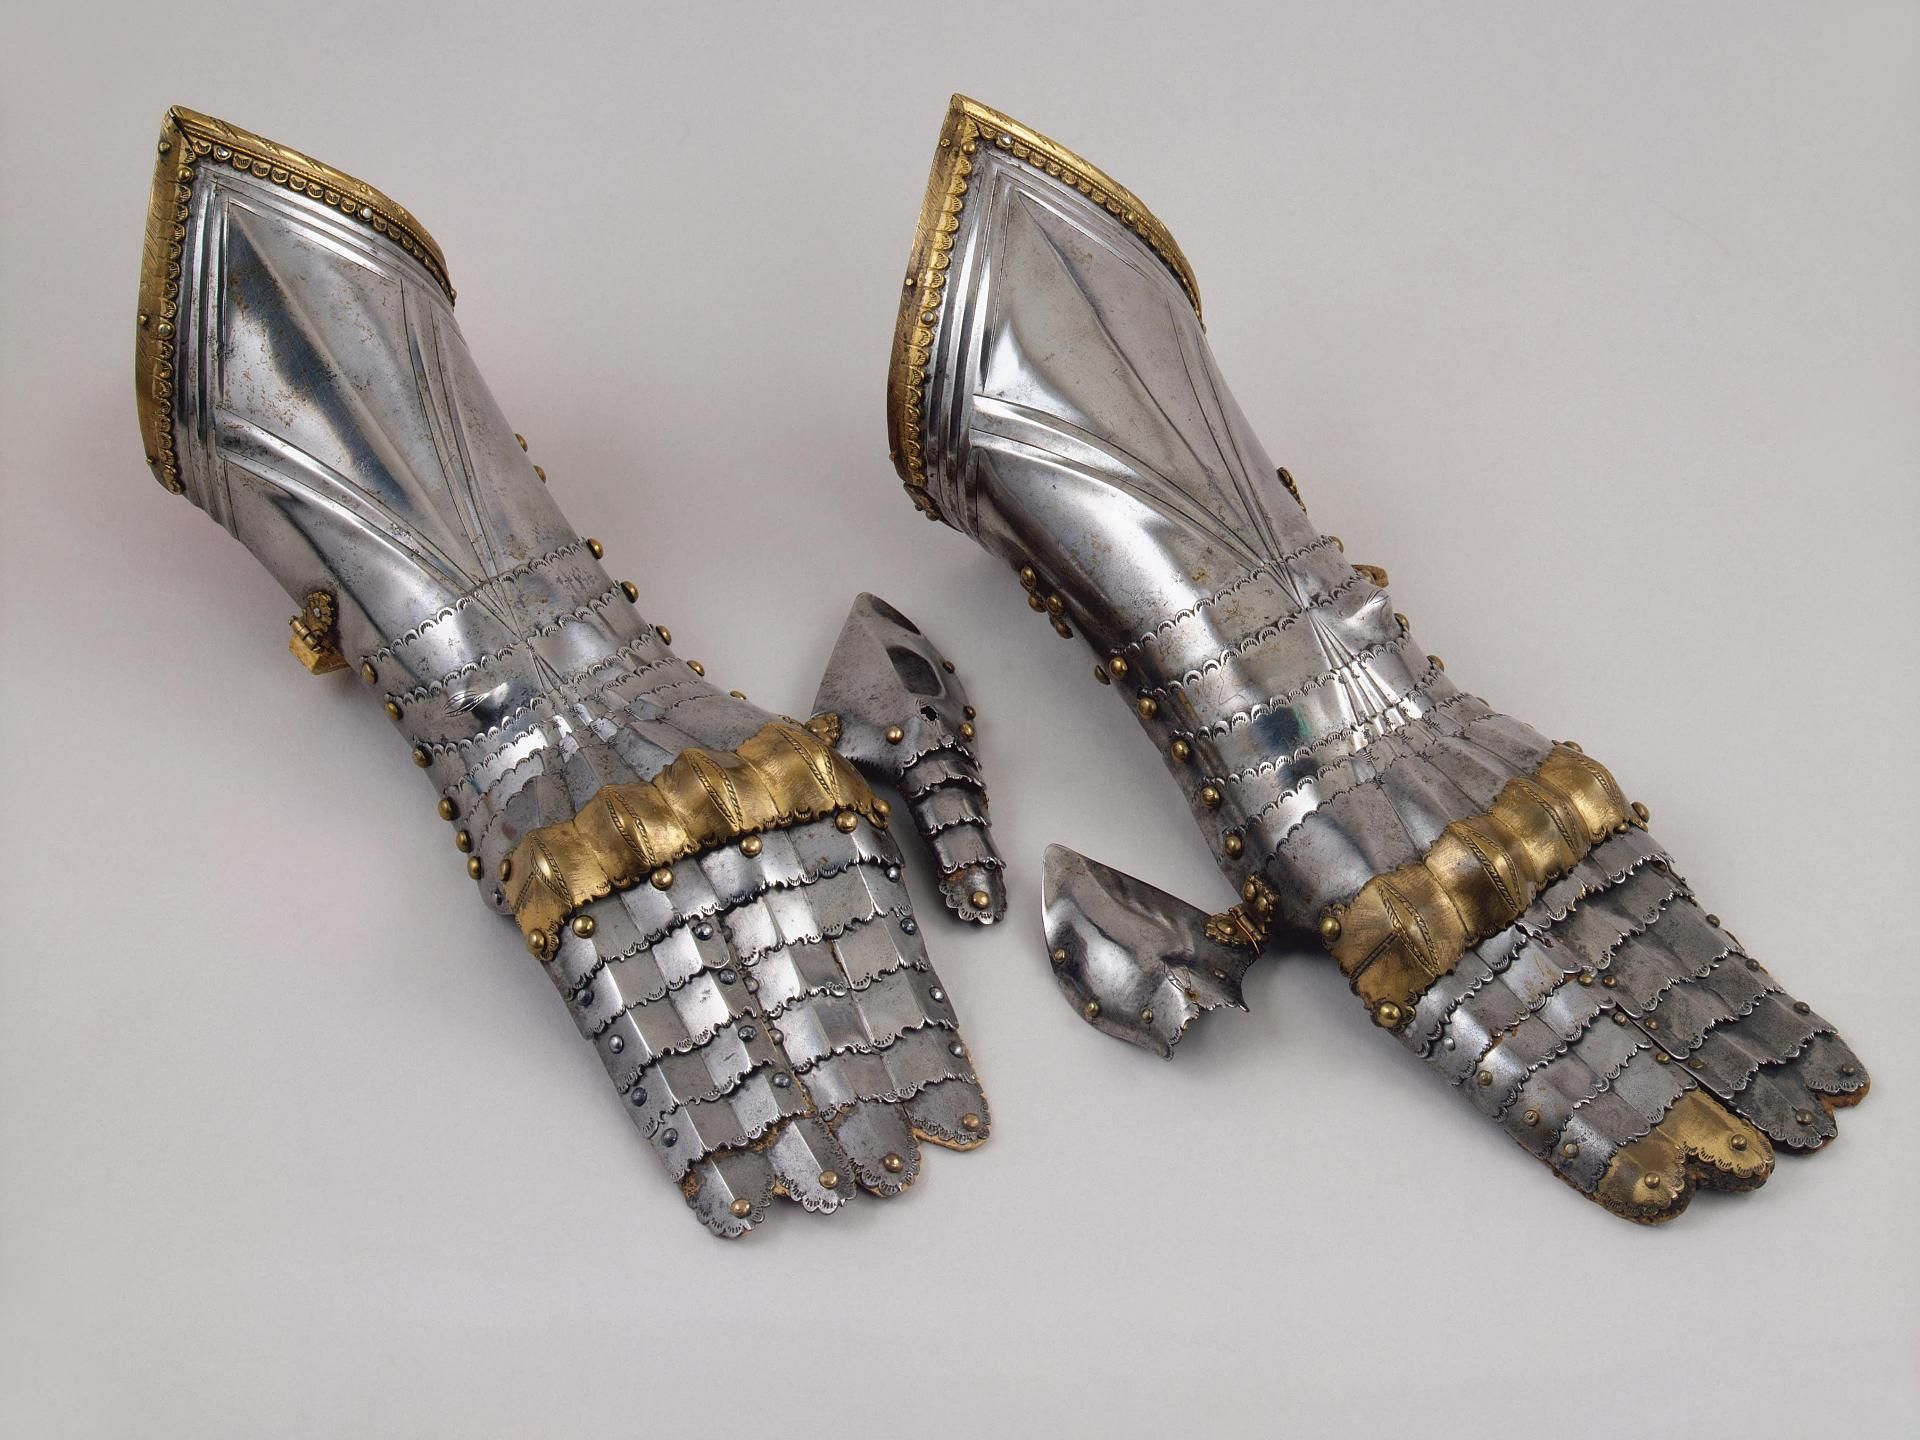 Gauntlets, Place of creation: Germany Date: Between 1470 and 1480 School: Nuremberg Material: steel and copper. Make your own from duct tape www.warfarebyducttape.com